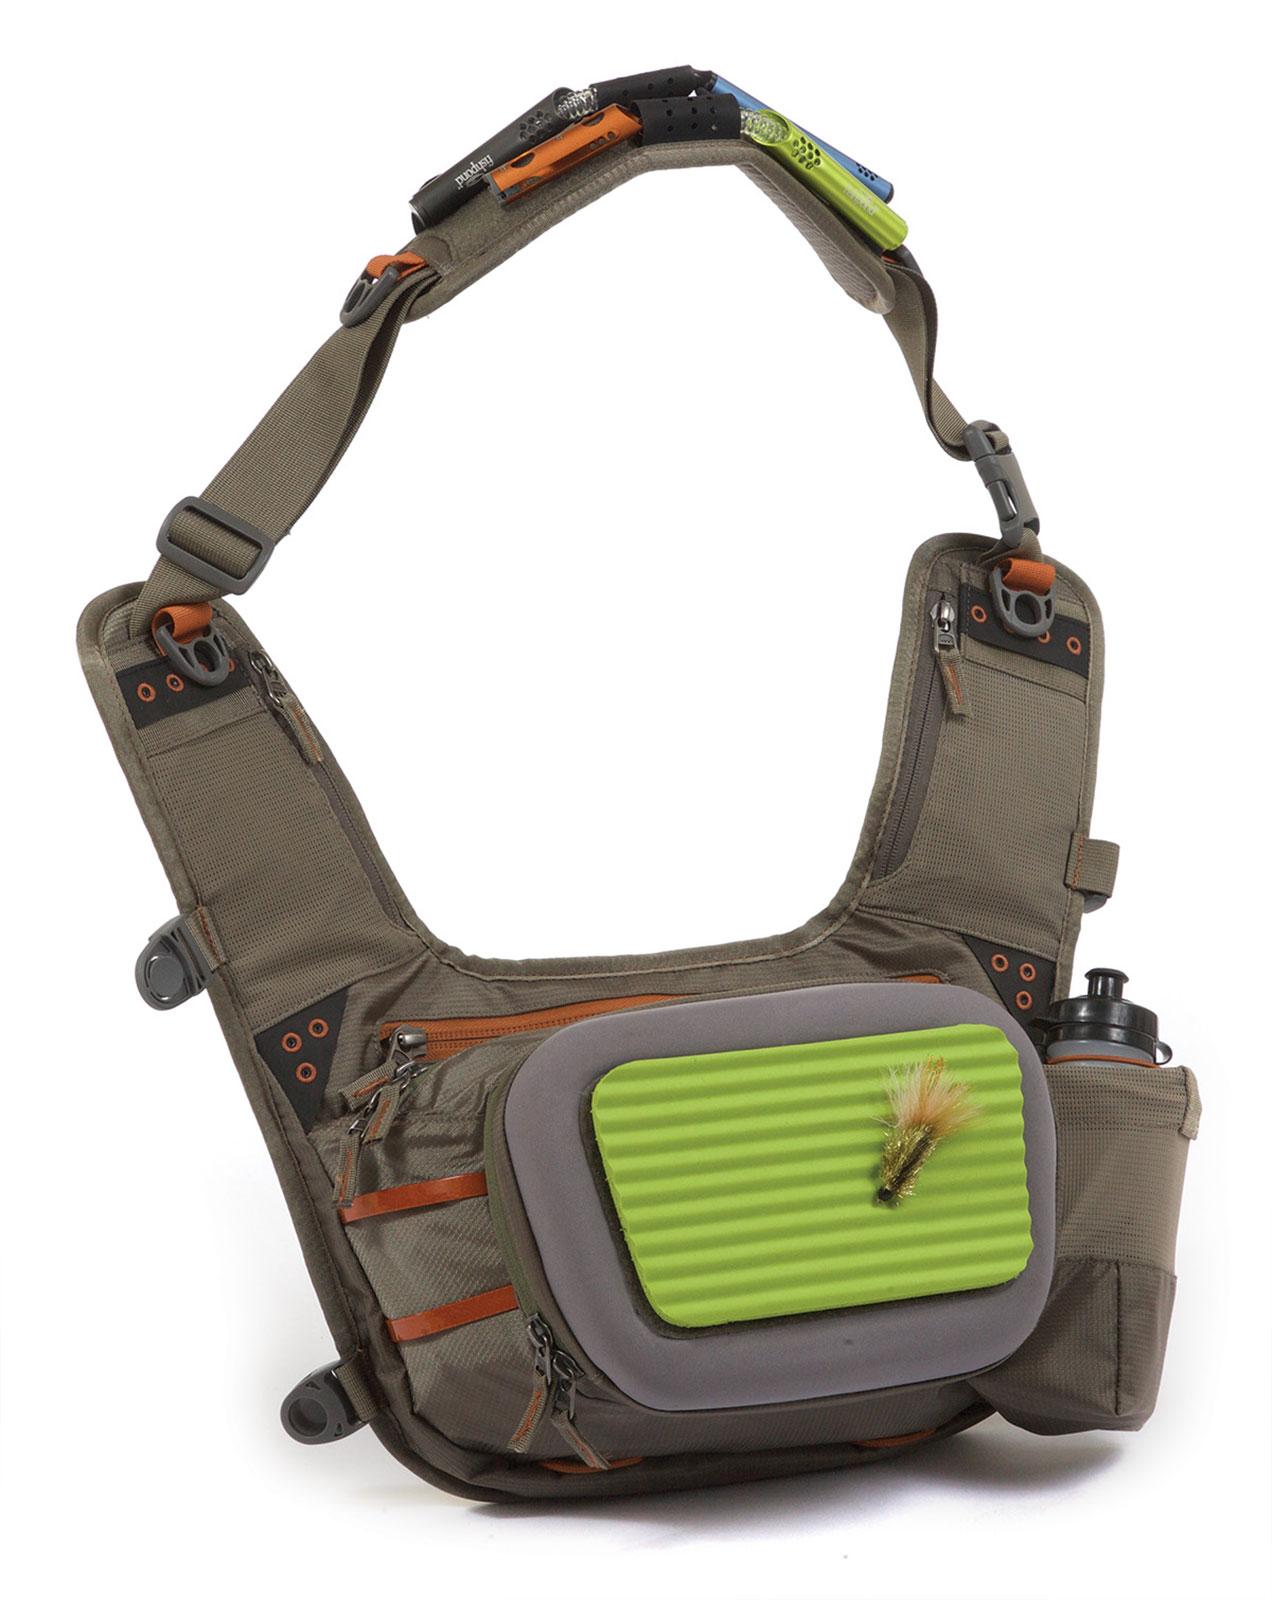 Fishpond buckhorn sling fly fishing pack shoulder bag for Fishing sling pack